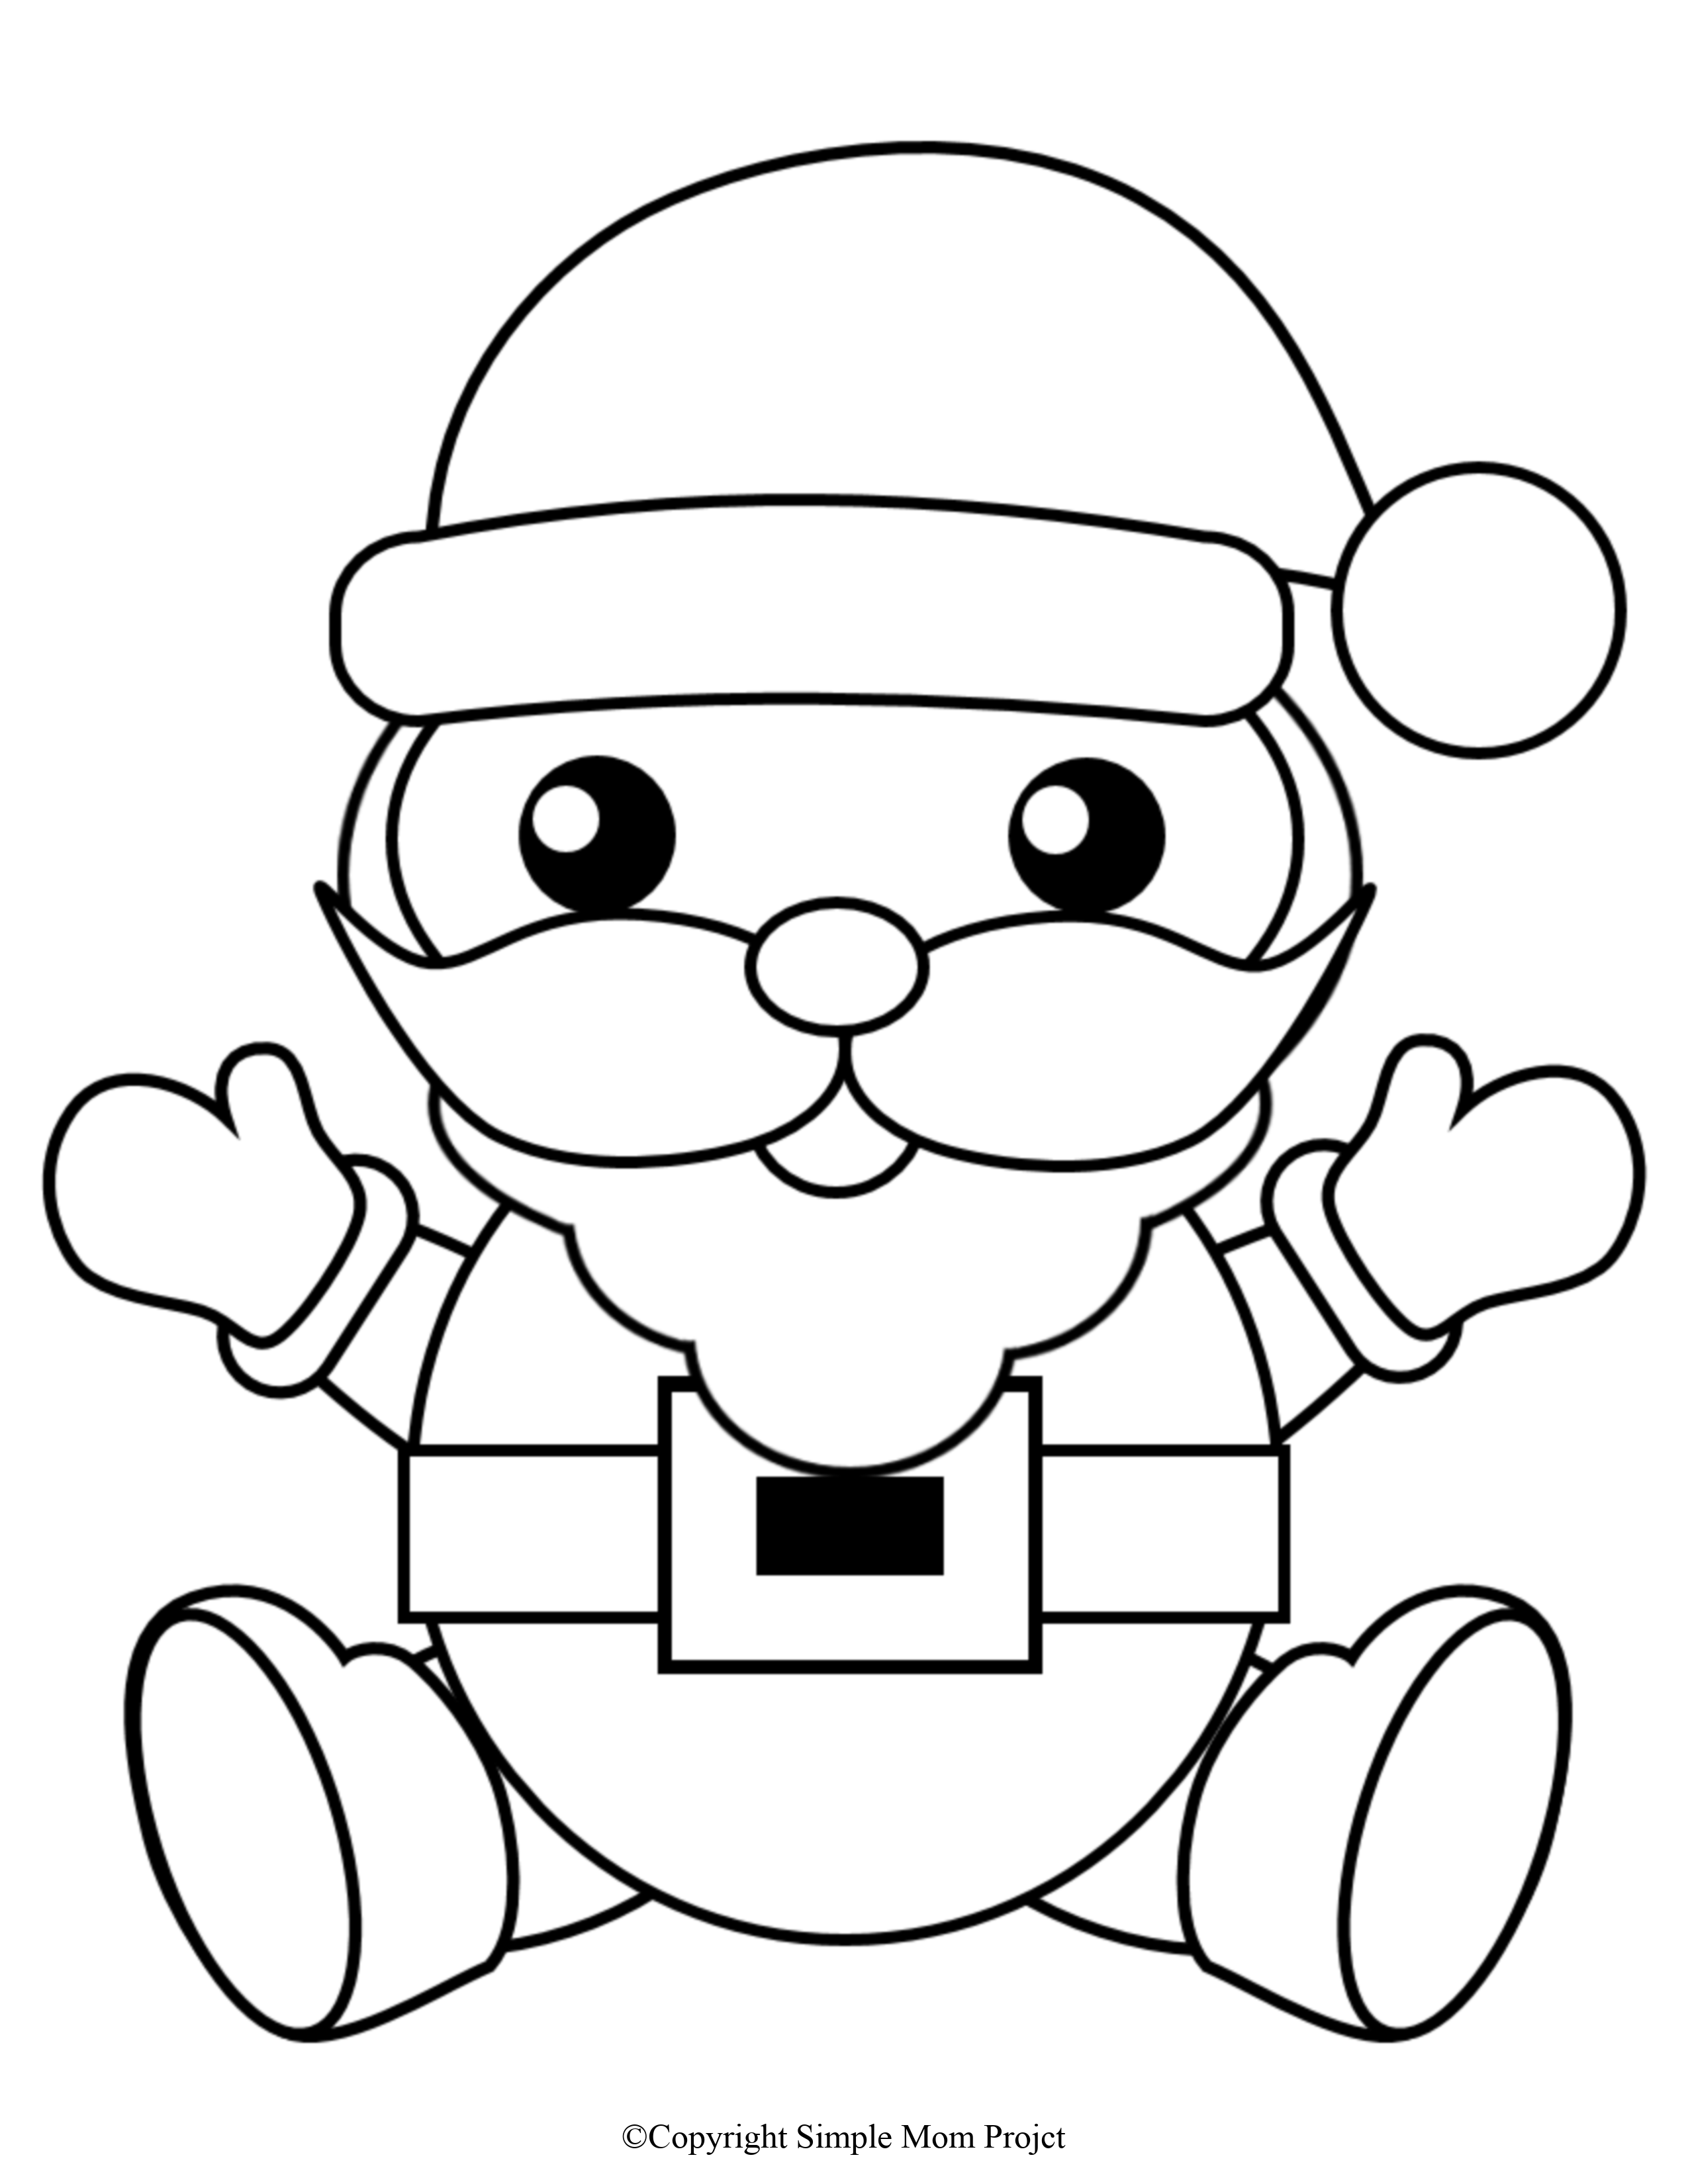 Free Printable Christmas Coloring Sheets for Kids and ...